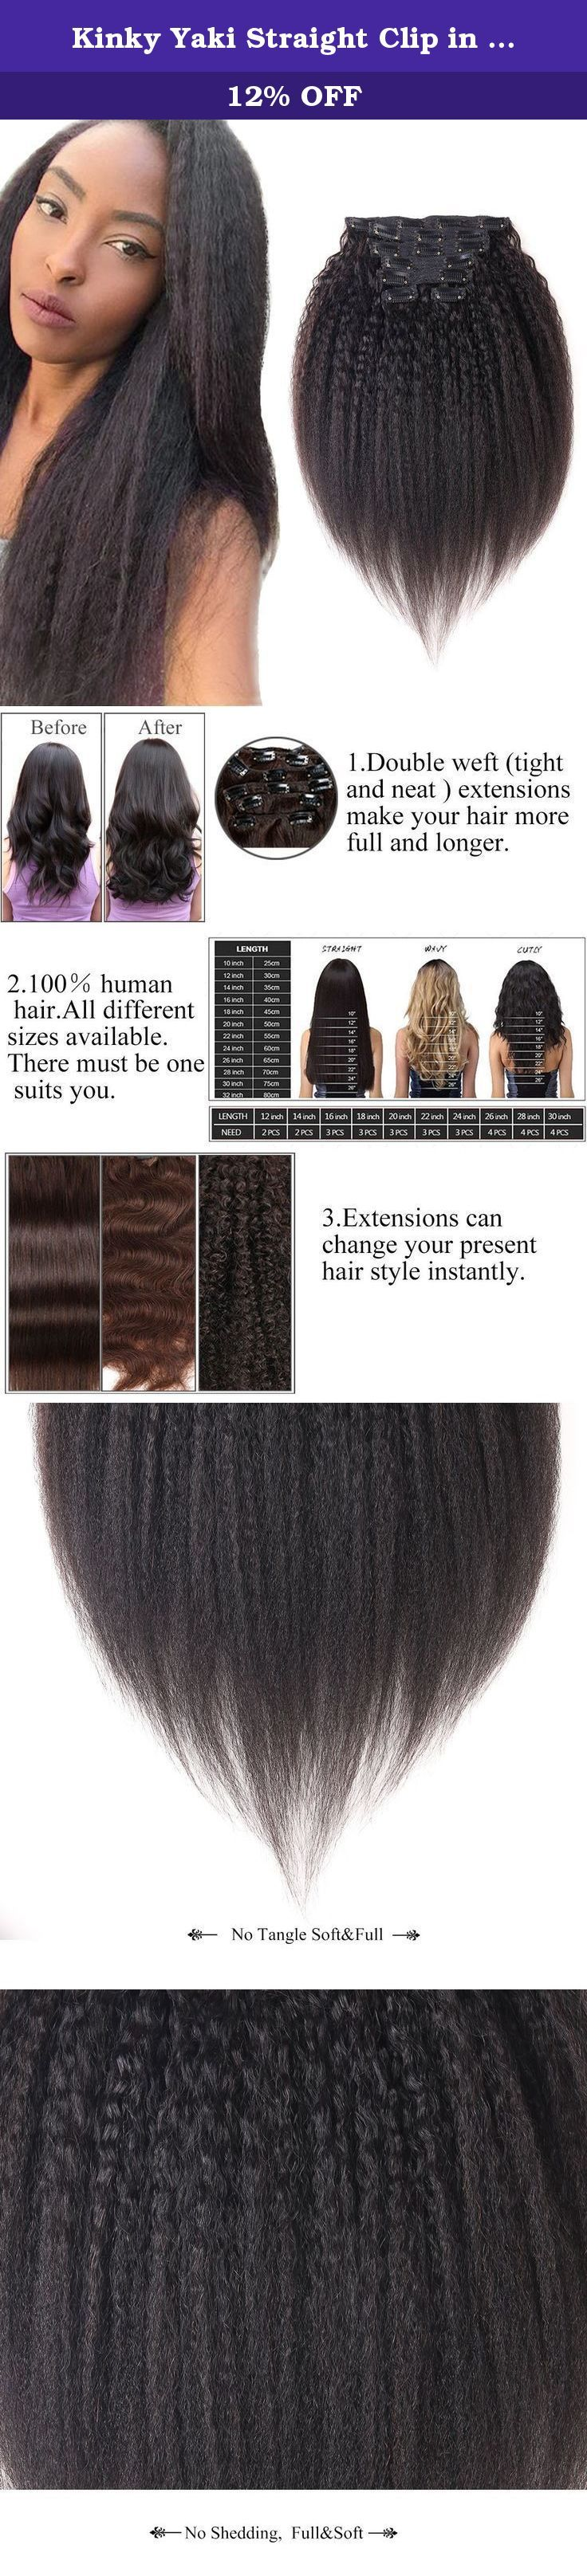 Kinky Yaki Straight Clip In Human Hair Extensions Black Double Weft